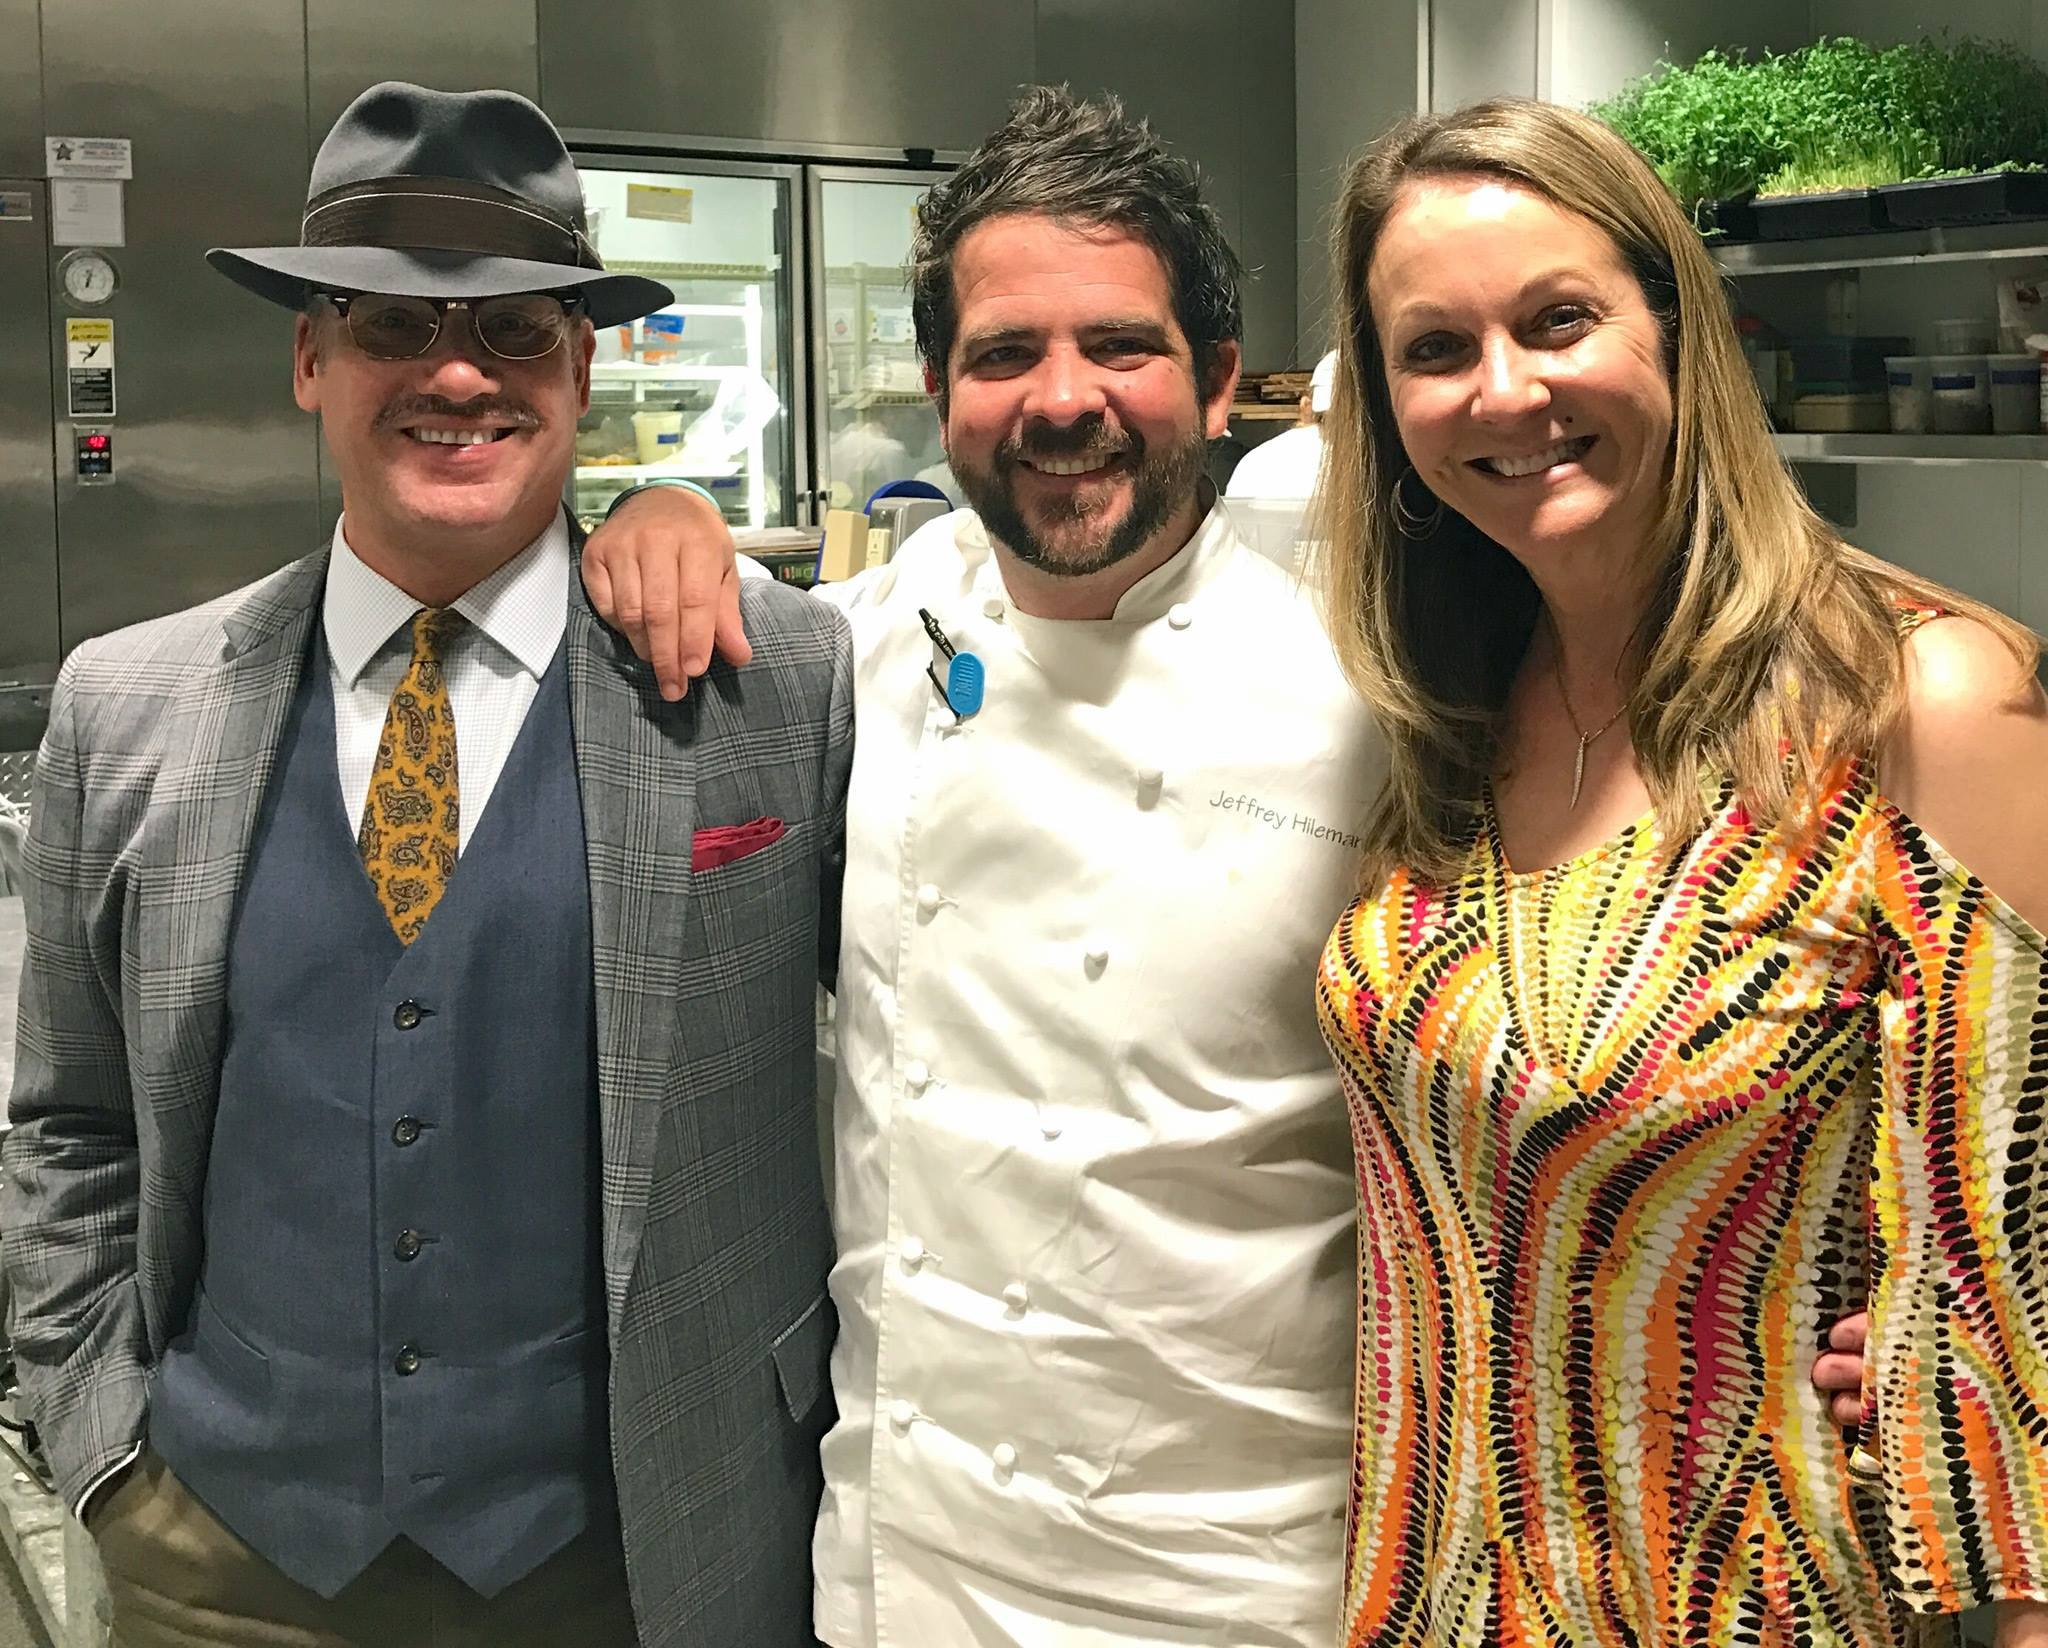 "Kevin Godbee & Lori Brown Hanging out in the kitchen at FarmTable Kitchen with Chef ""Cheffery"" Jeffery Hileman."